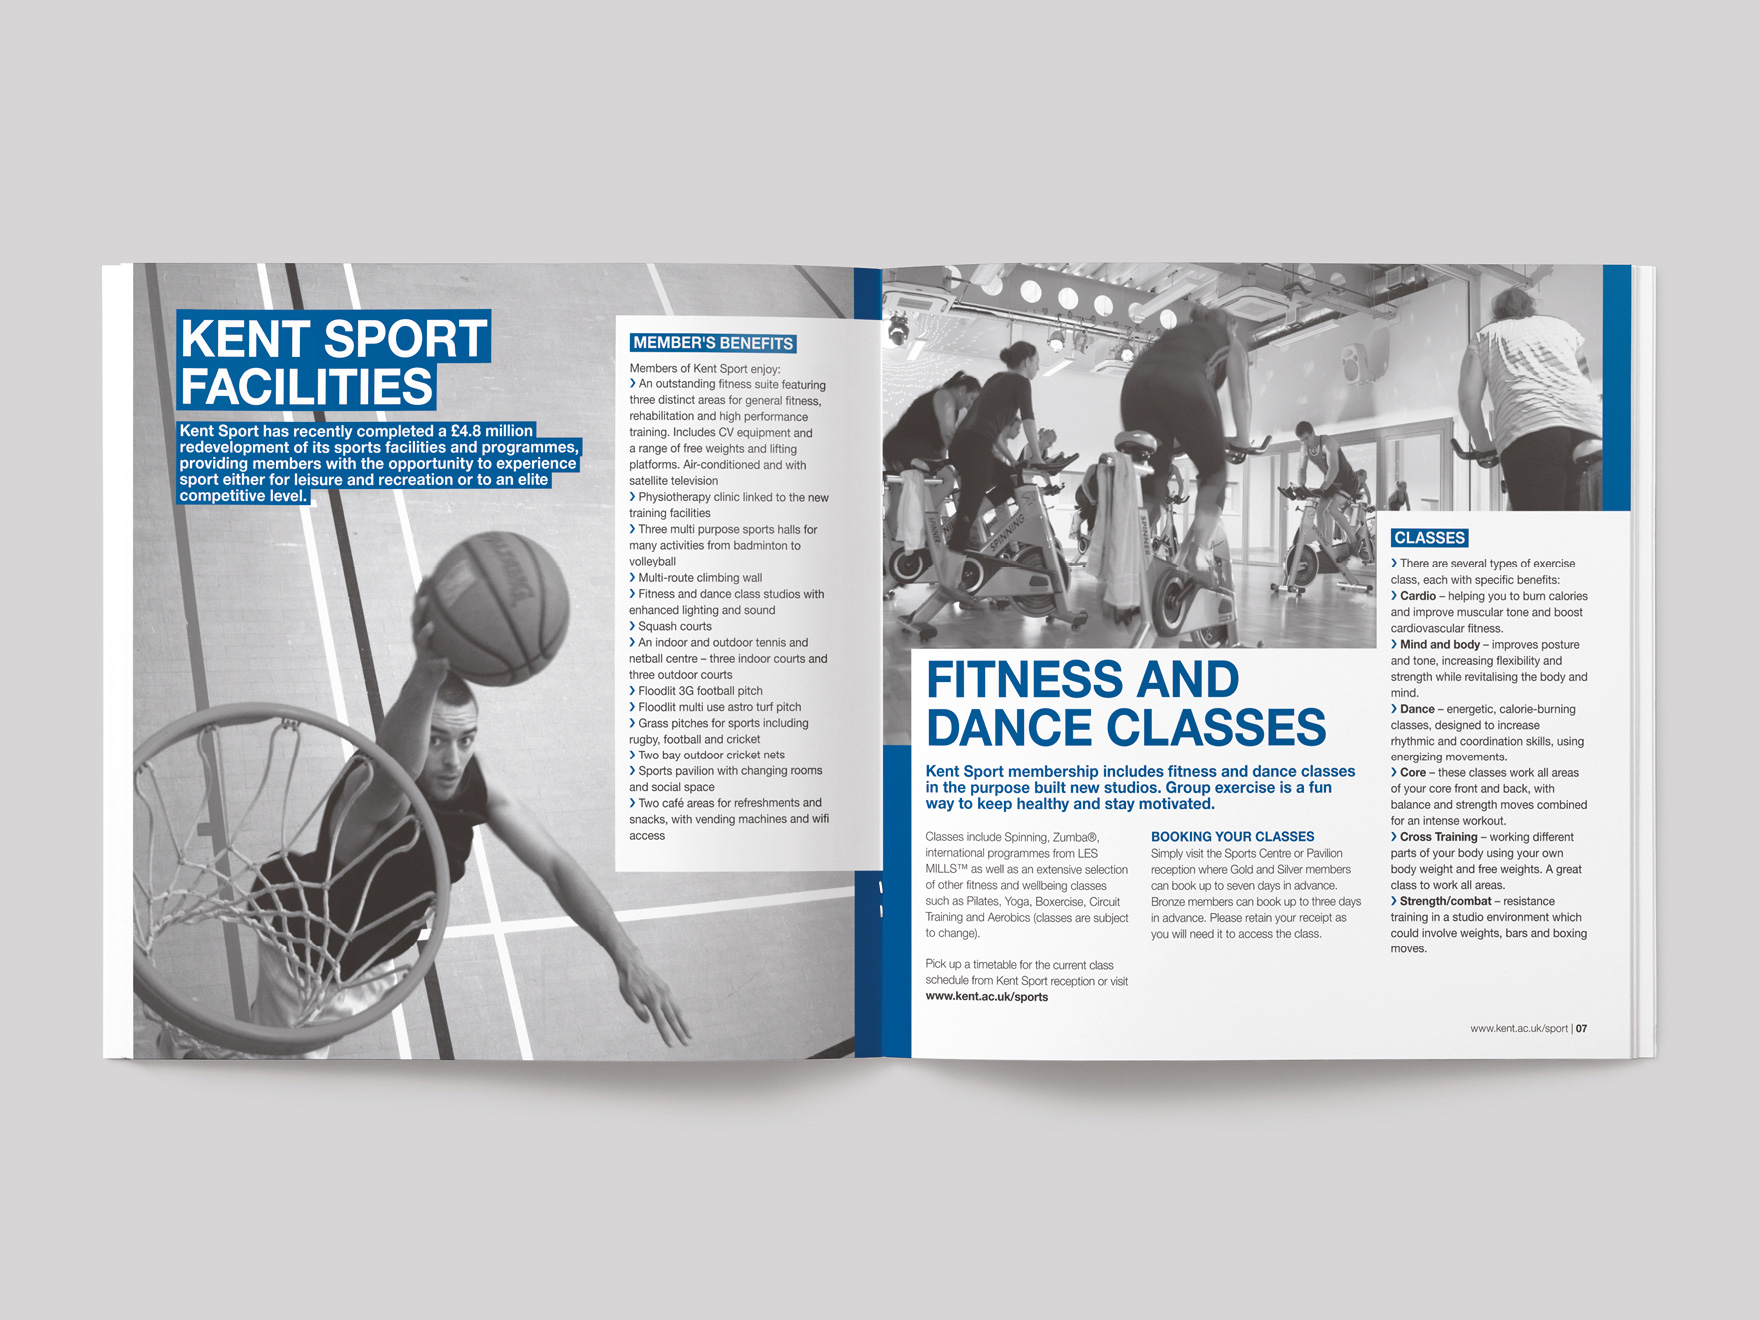 Inside pages from a brochure for Kent Sport showing the sporting facilities